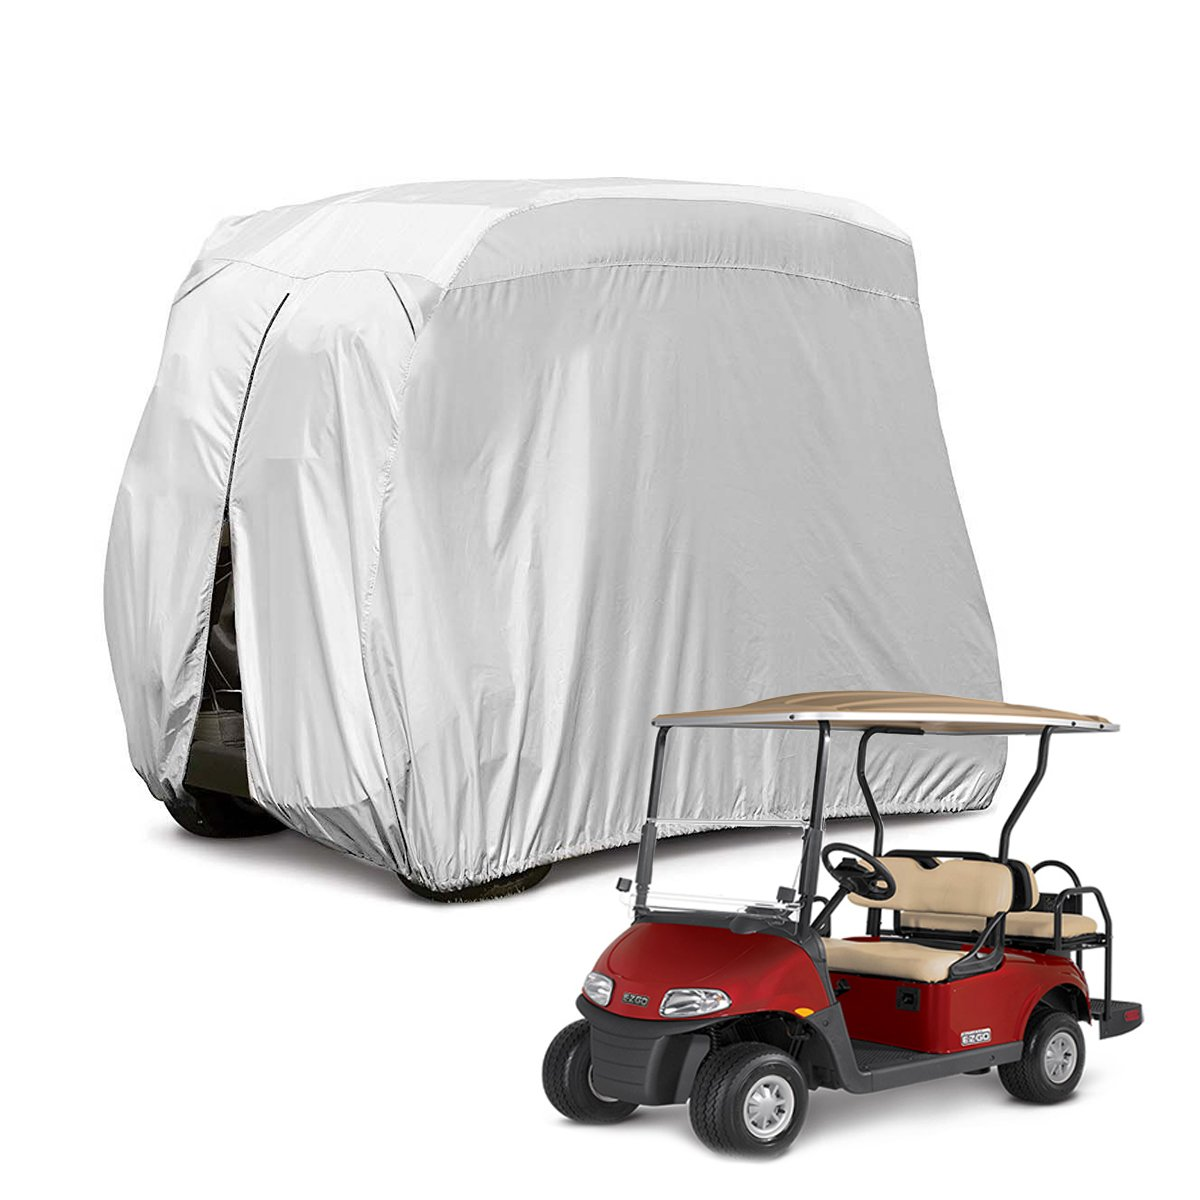 Himal 4 Passenger 400D Waterproof Sunproof Golf cart Cover roof 80'' L, fits EZ GO, Club car and Yamaha, dustproof and Durable, Grey